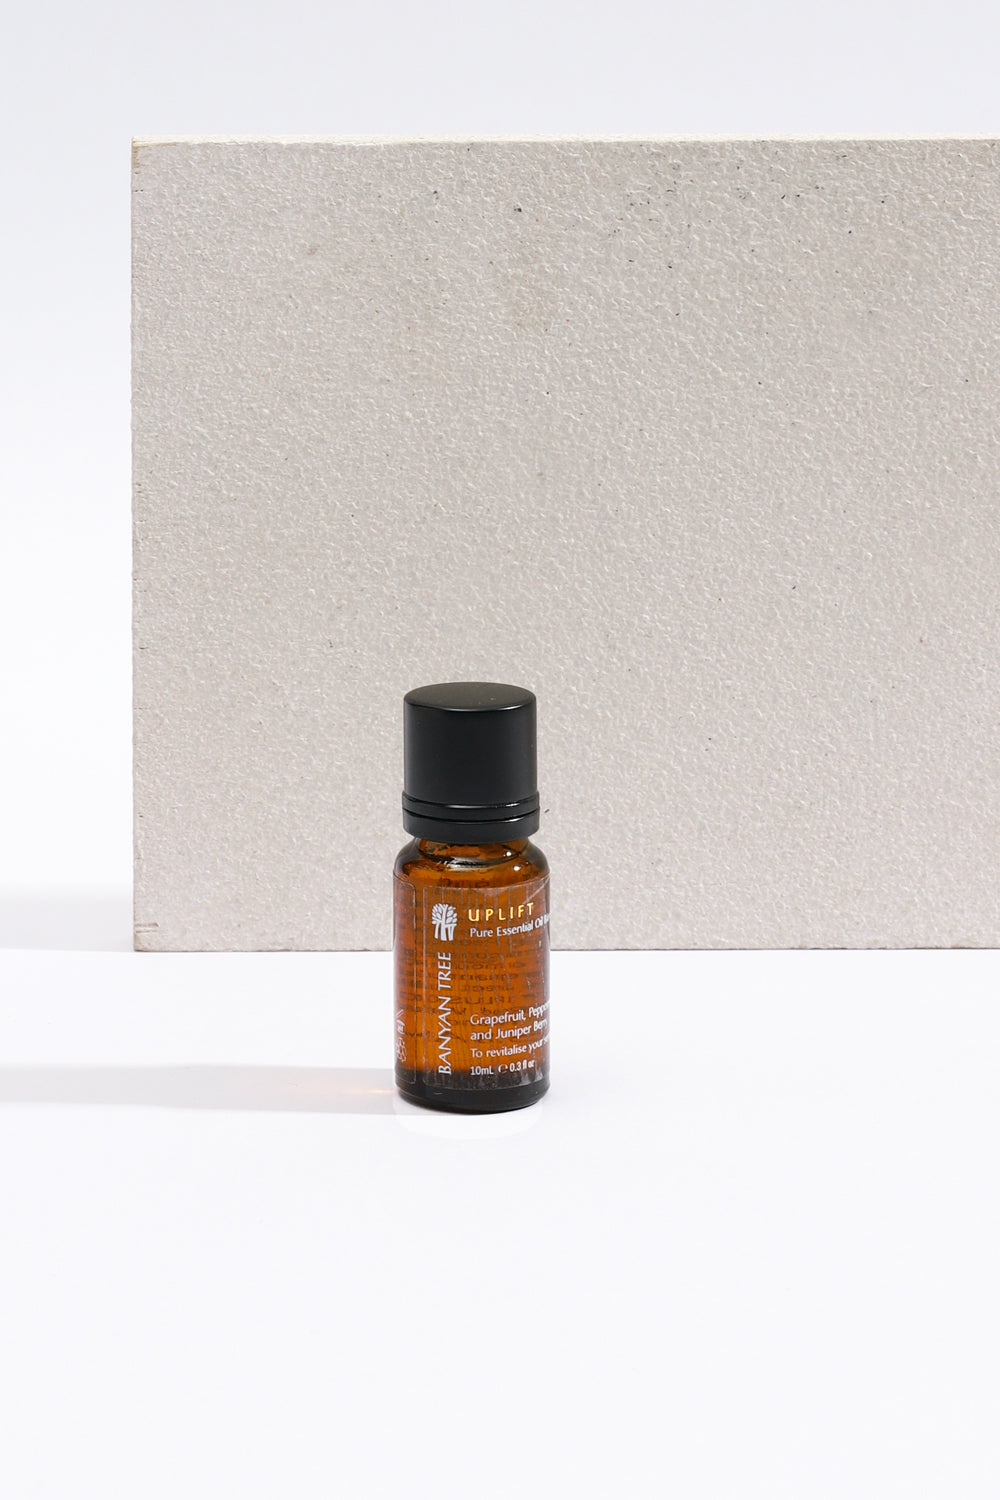 Uplift 100% Pure Essential Oil Blend